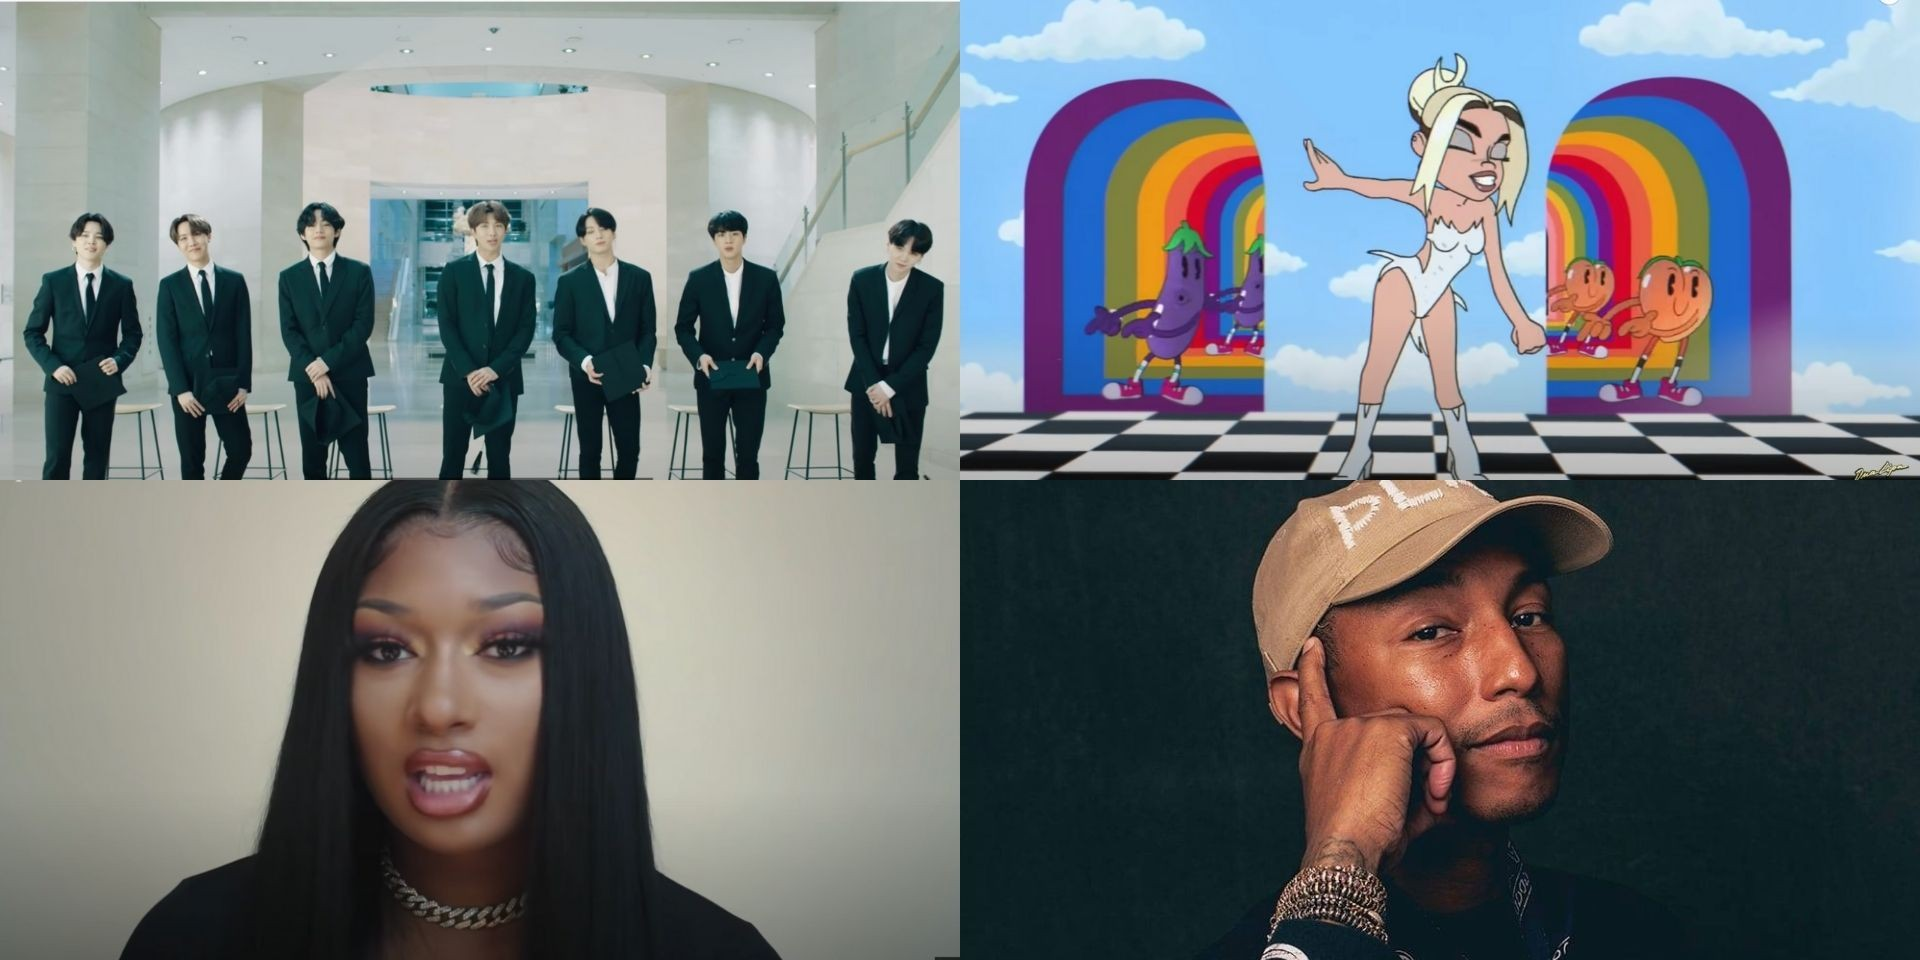 Here are the winners of the 2021 Webby Awards — including BTS, Dua Lipa, Megan Thee Stallion, Pharrell Williams, and more